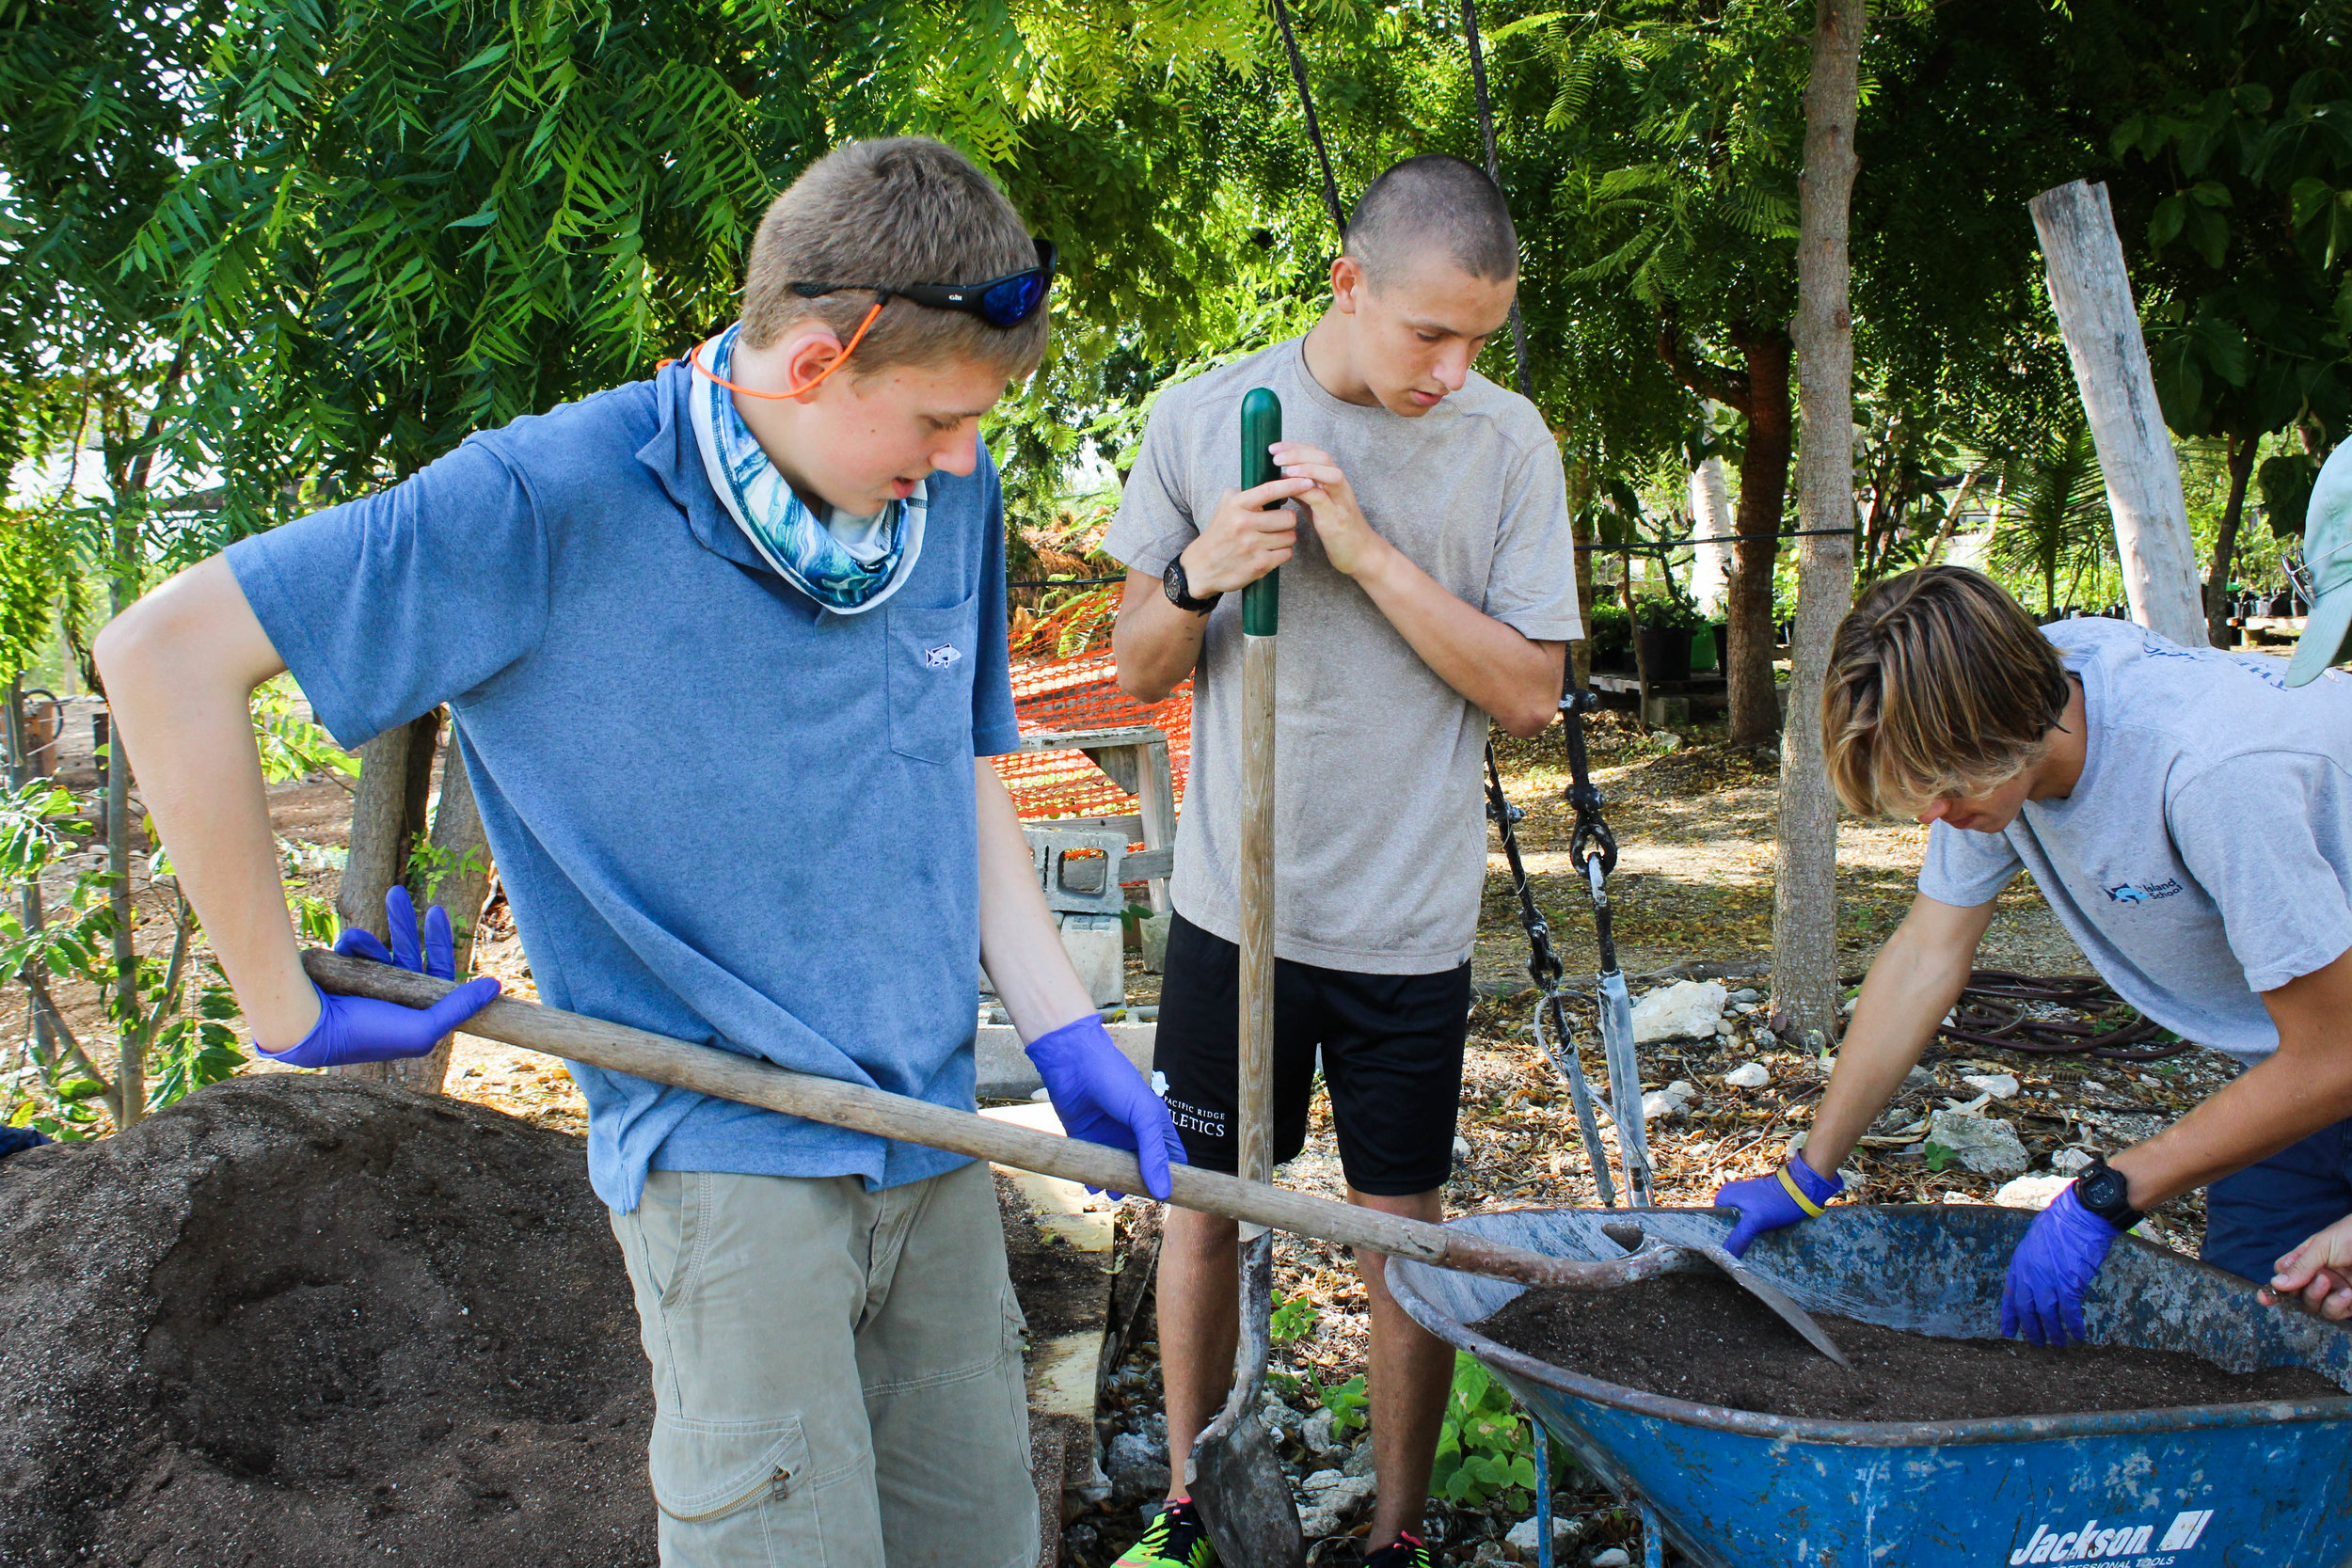 Island School students working to construct the Research Garden in which their research class will be focused.